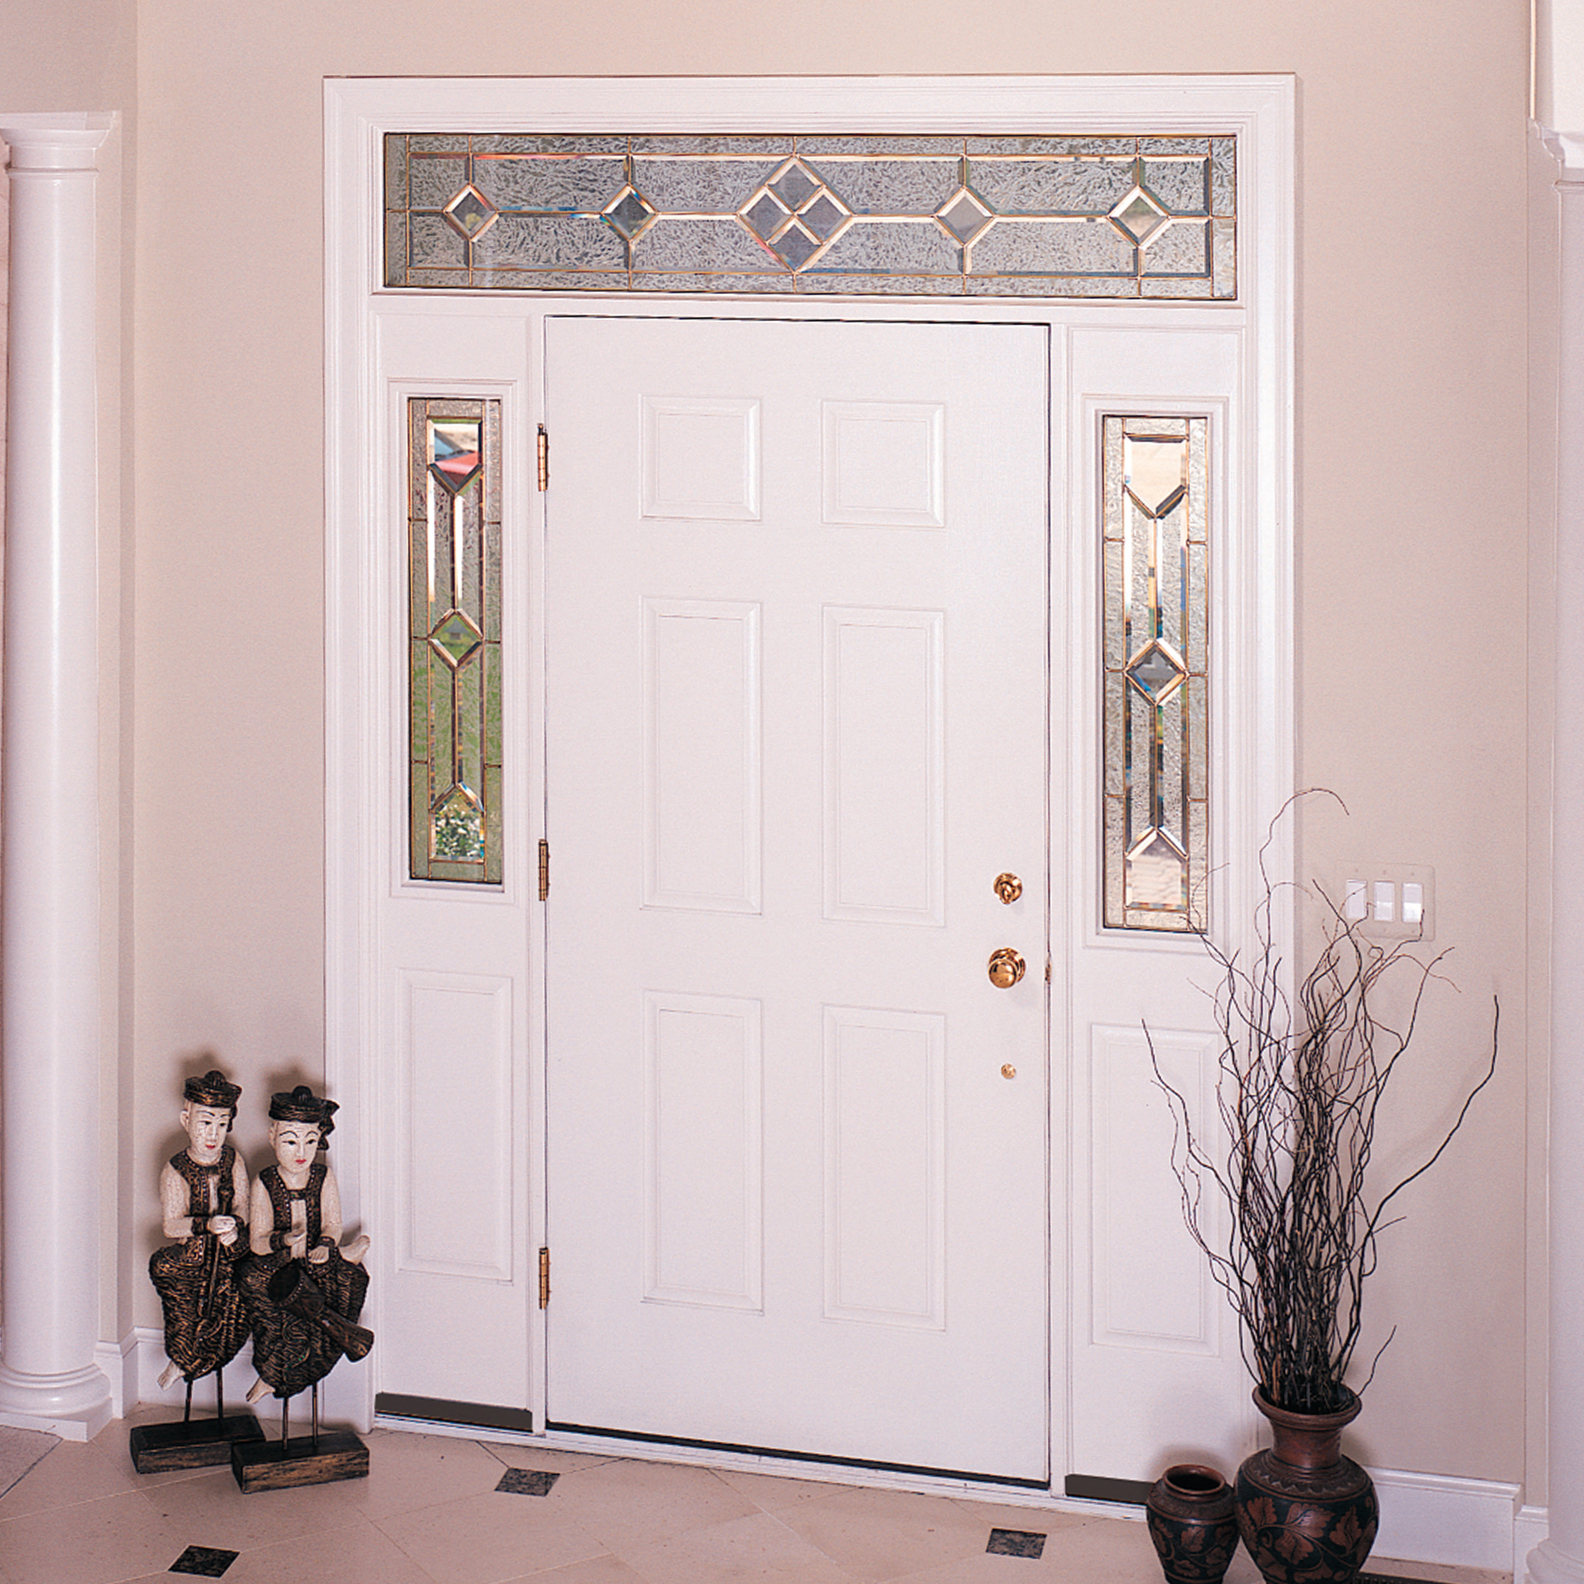 TRADITIONS STEEL ENTRY DOOR SYSTEMS